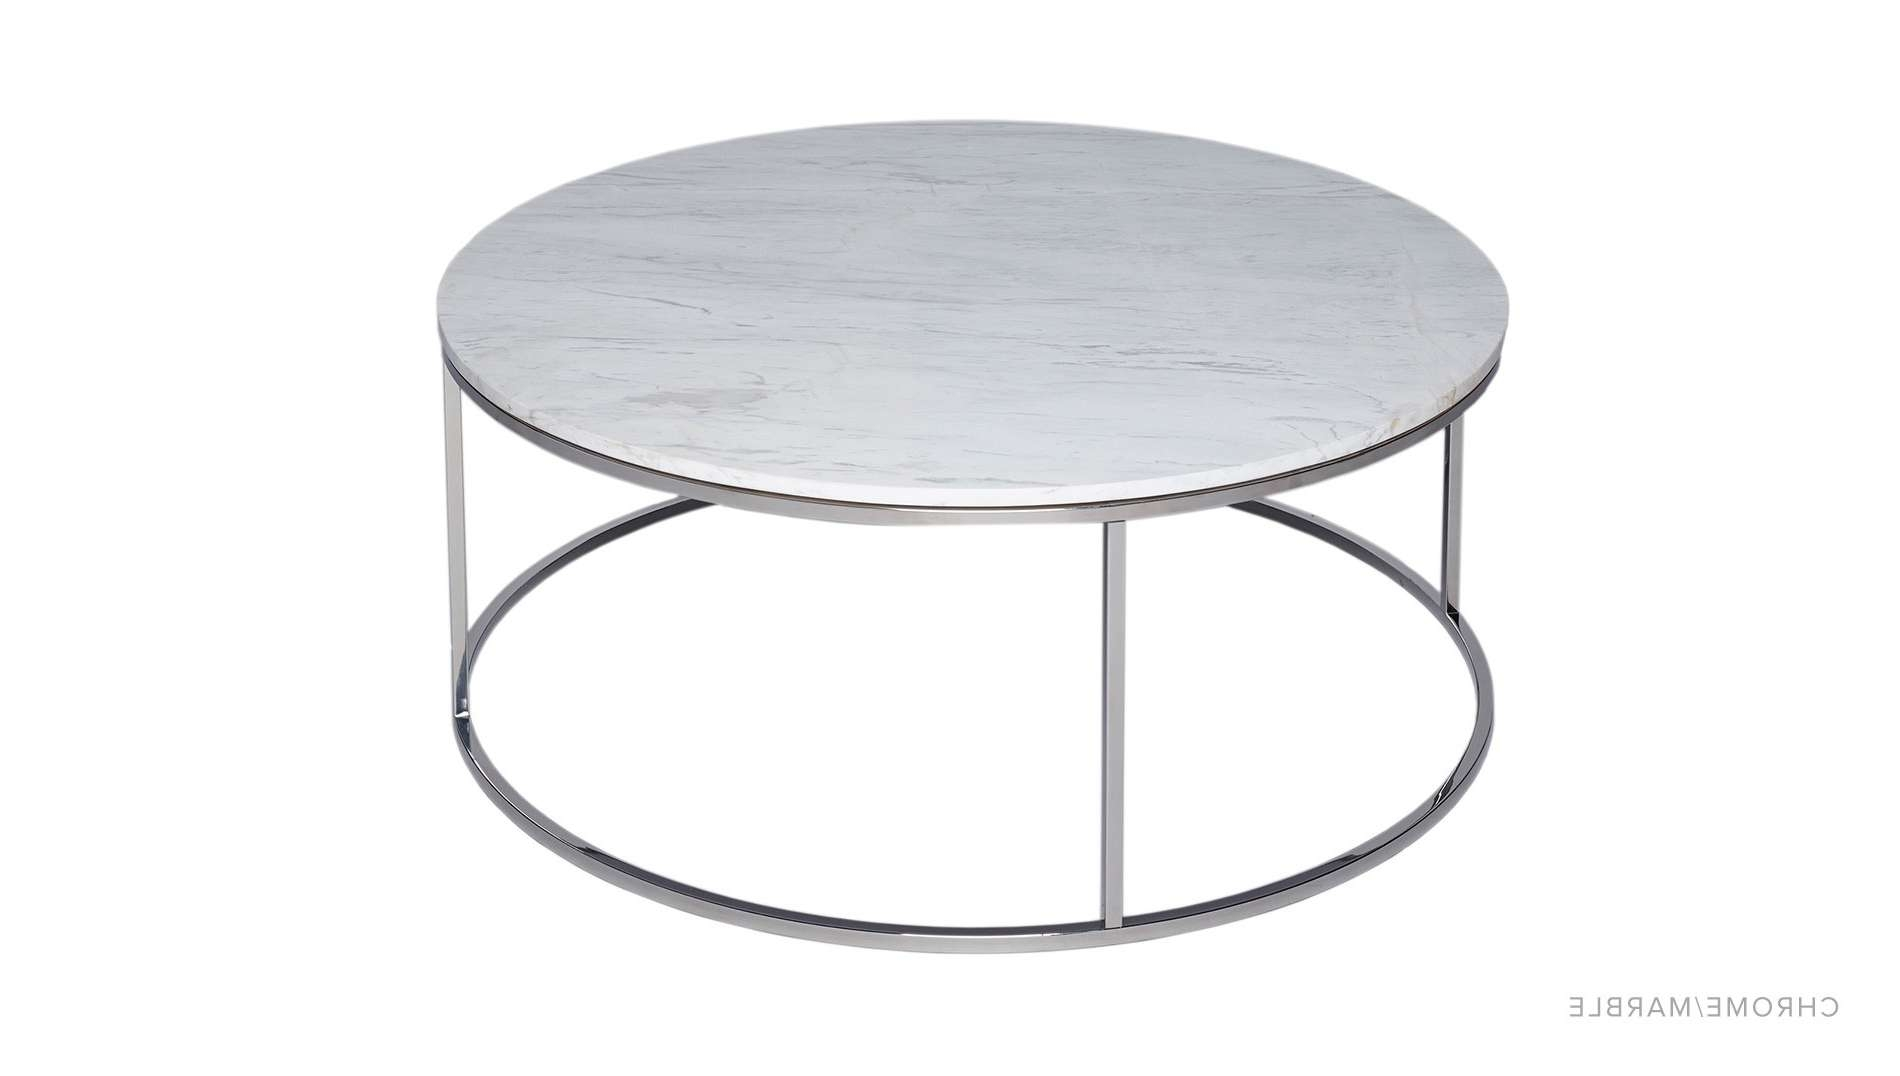 Most Recent Marble Round Coffee Tables Within Coffee Table : Amazing Modern Coffee Table Round Marble Top Coffee (View 3 of 20)